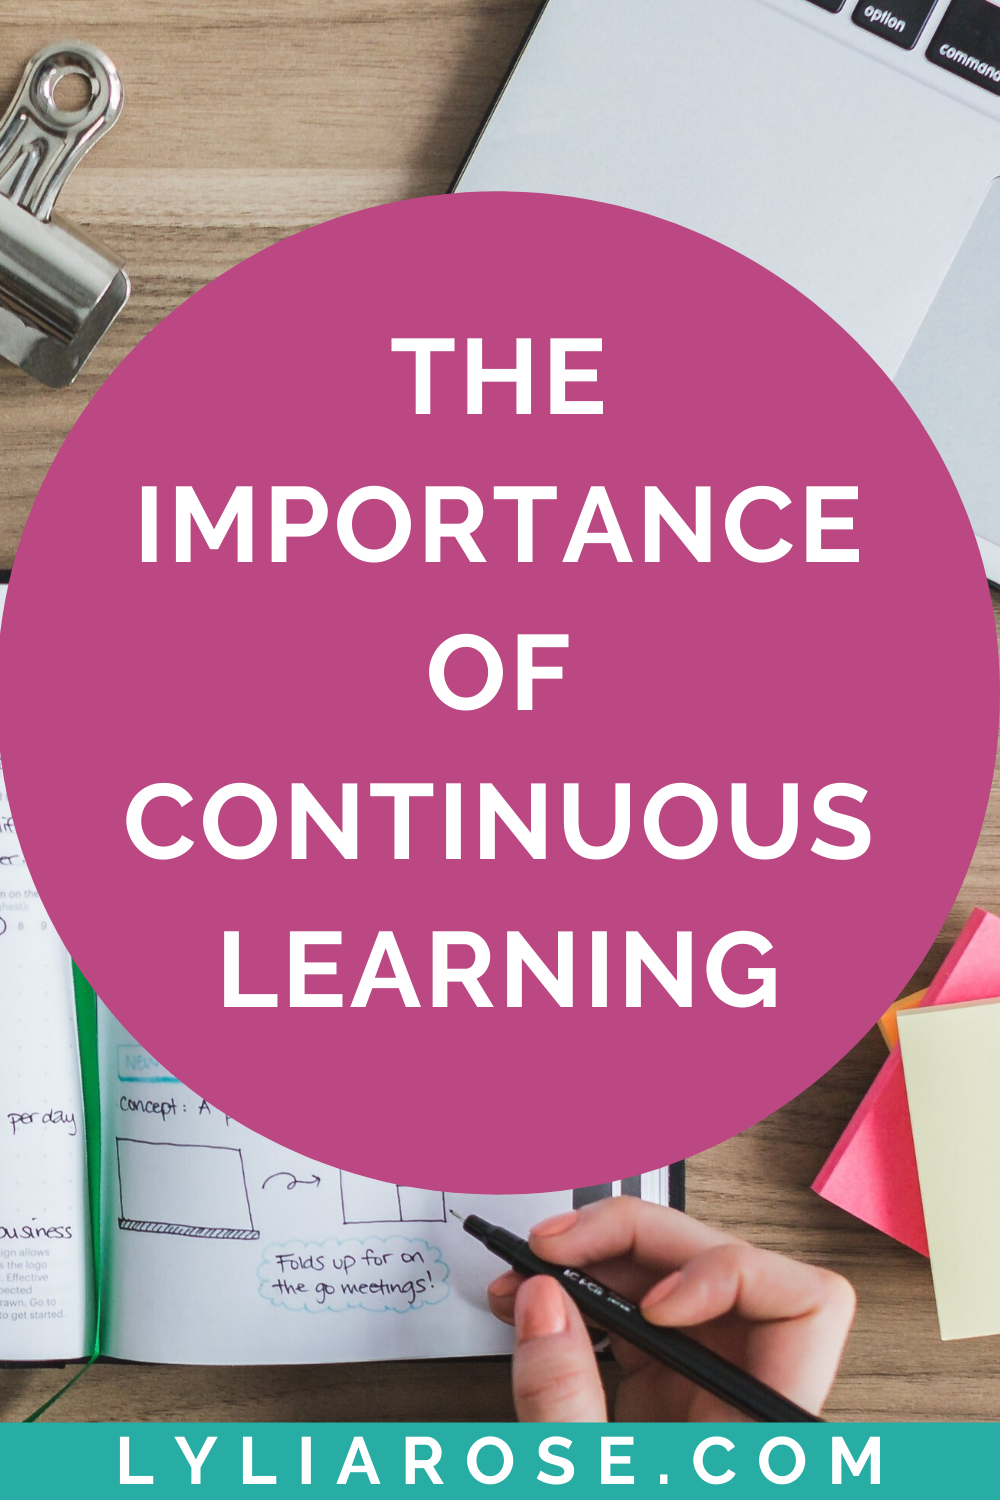 The importance of continuous ongoing learning